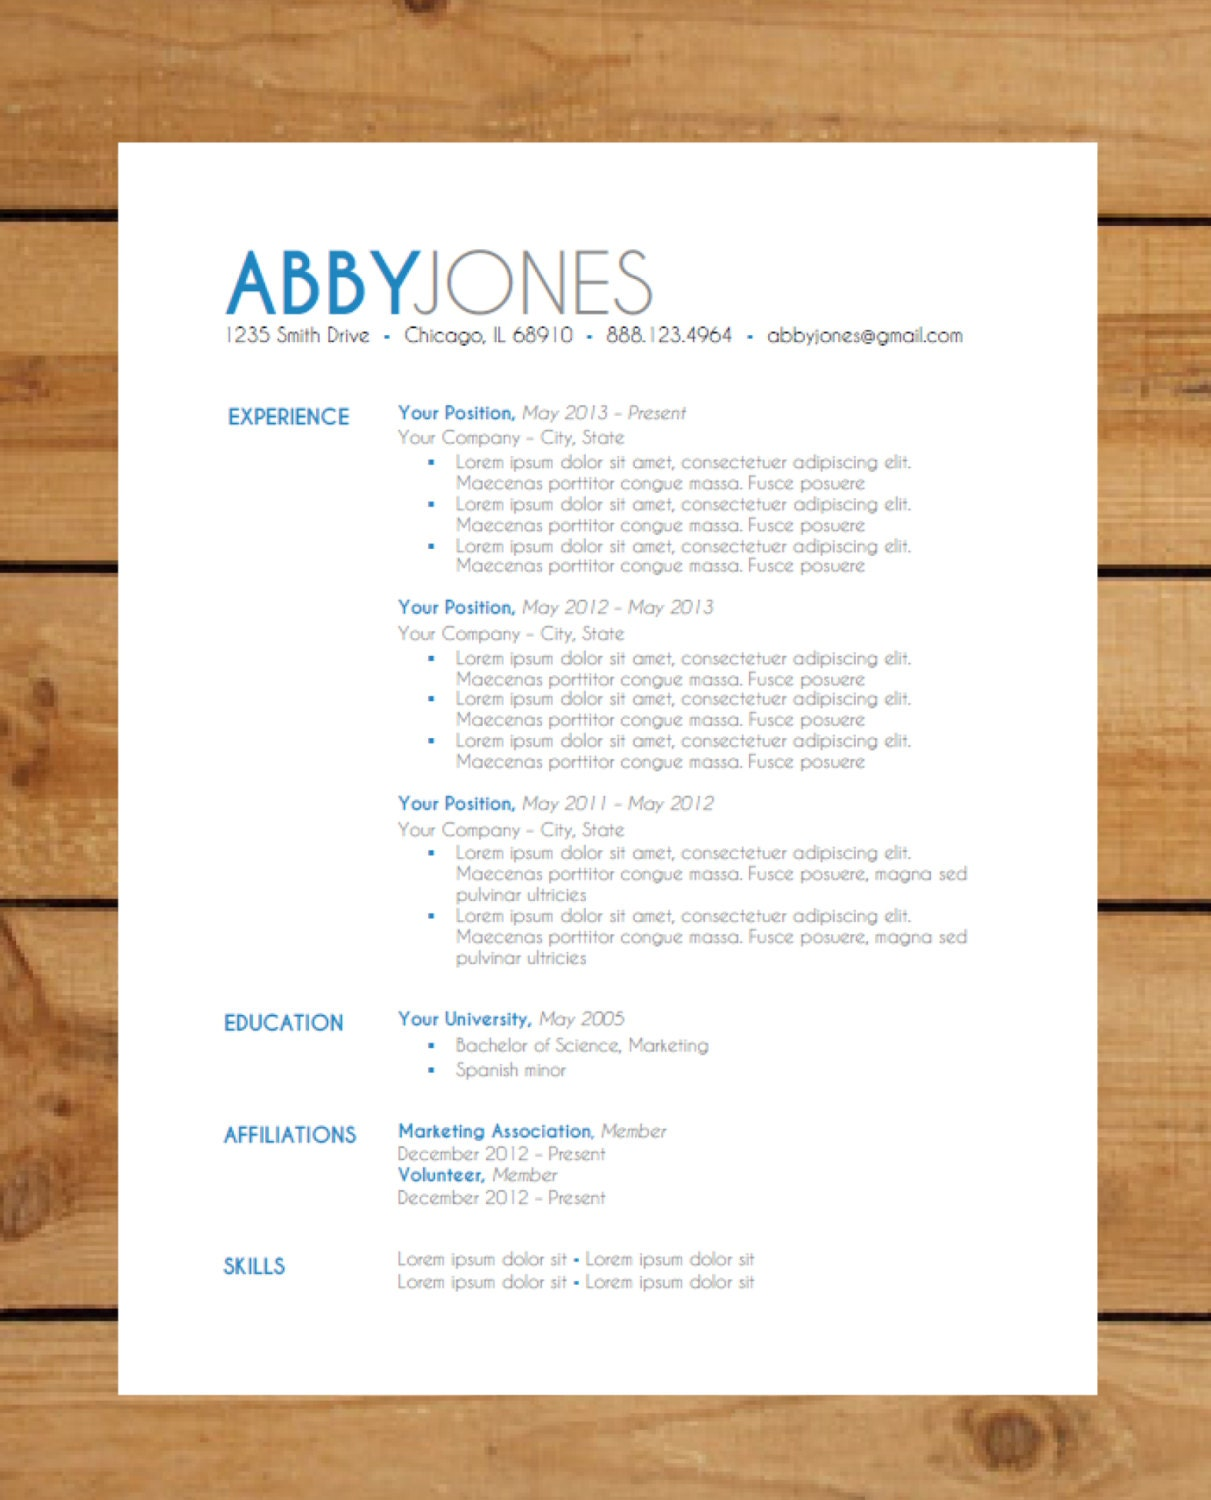 Resume Cv Templates Free Download%0A Road Map Of States In Usa